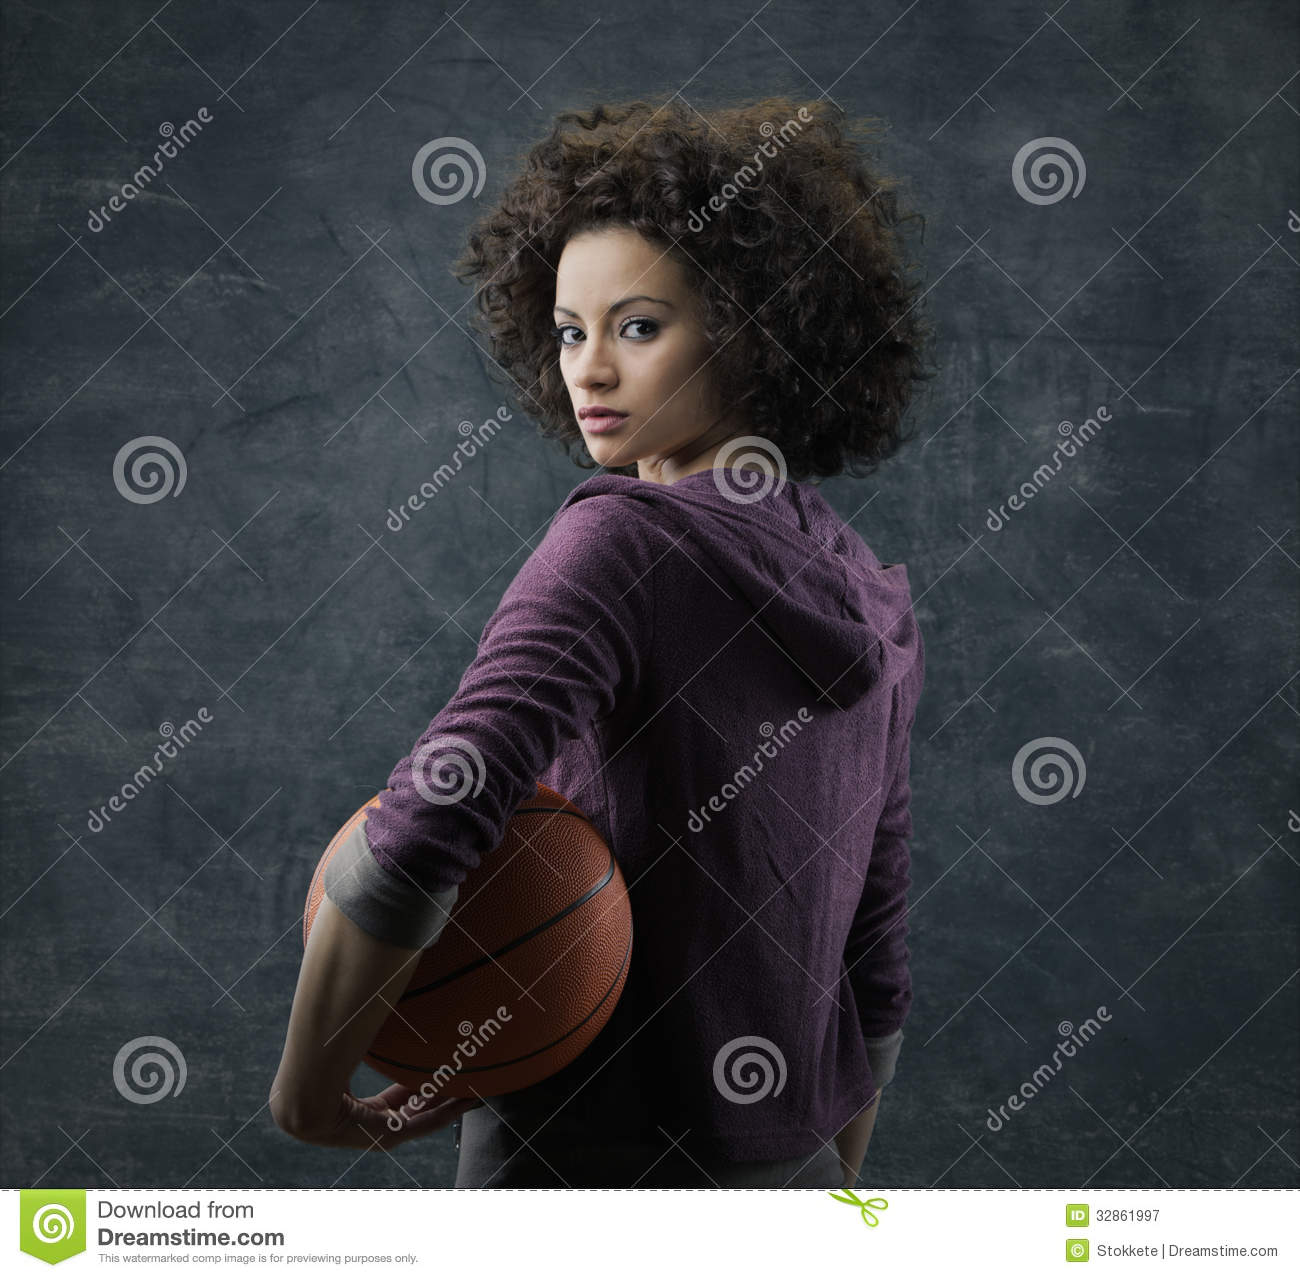 nude girl basketball players